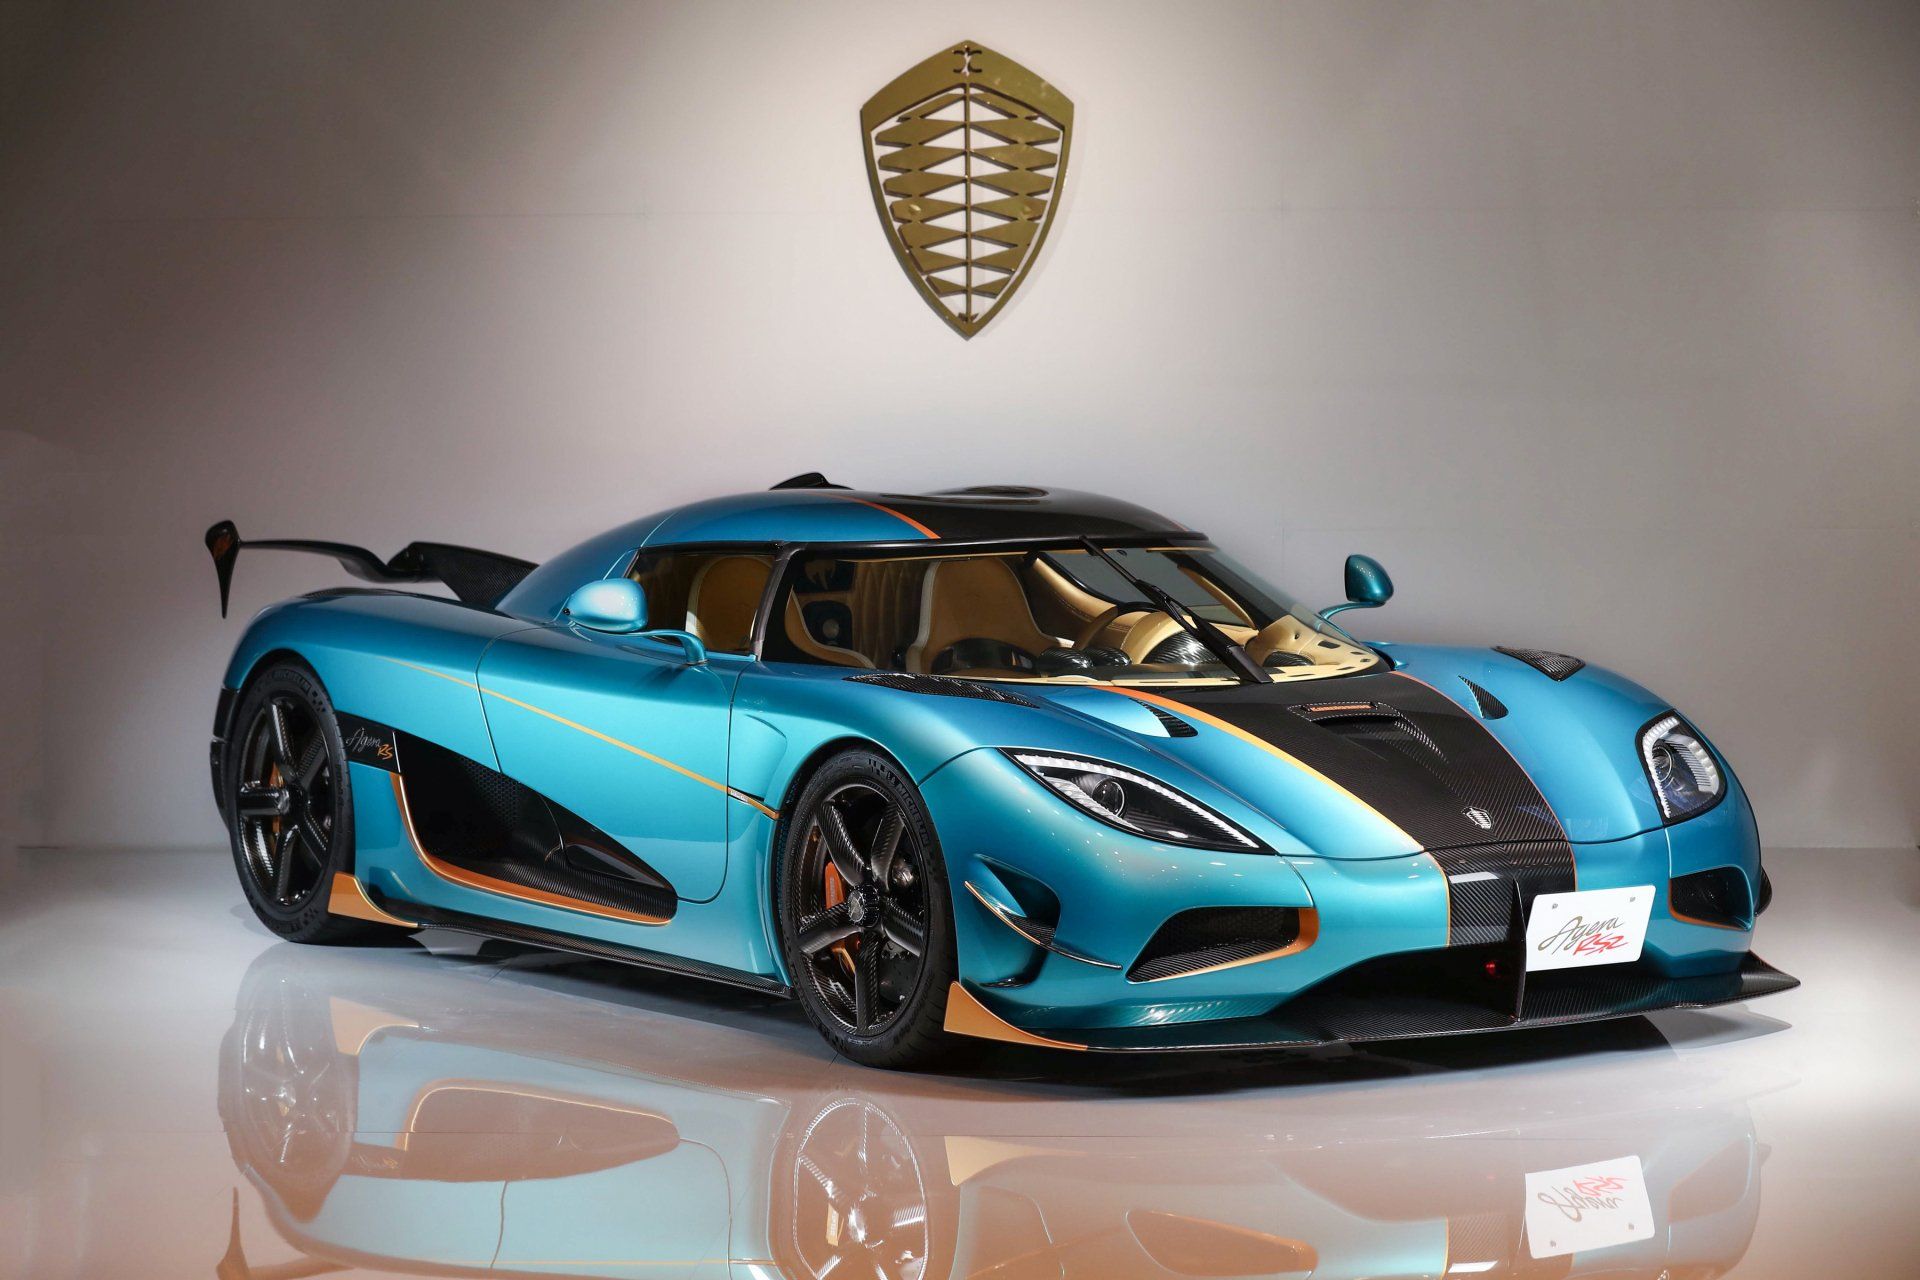 Vehicles - Koenigsegg Agera  Koenigsegg Car Vehicle Blue Car Sport Car Supercar Wallpaper